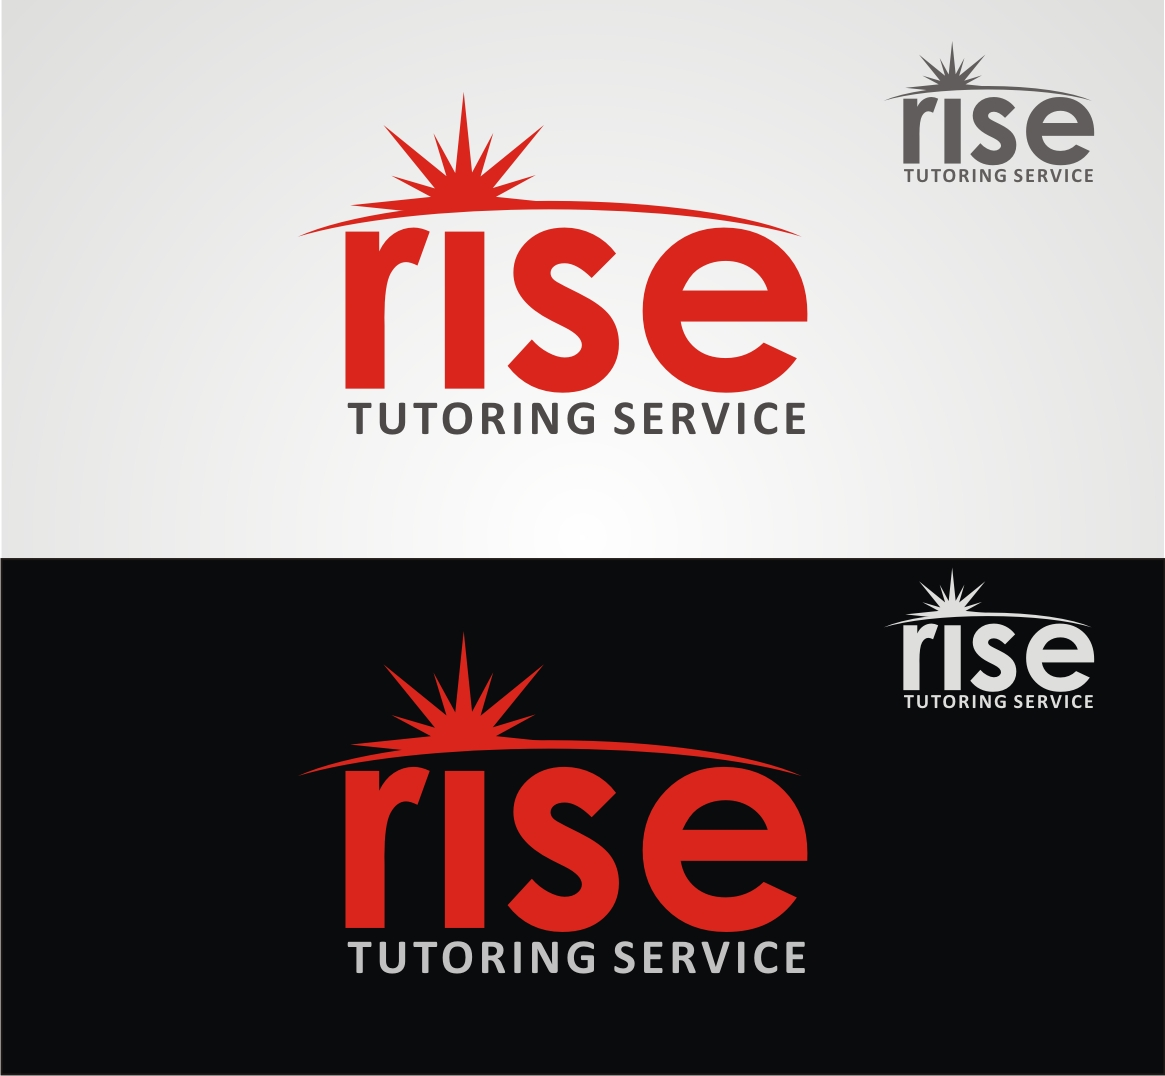 Logo Design by Reivan Ferdinan - Entry No. 31 in the Logo Design Contest Imaginative Logo Design for Rise Tutoring Service.